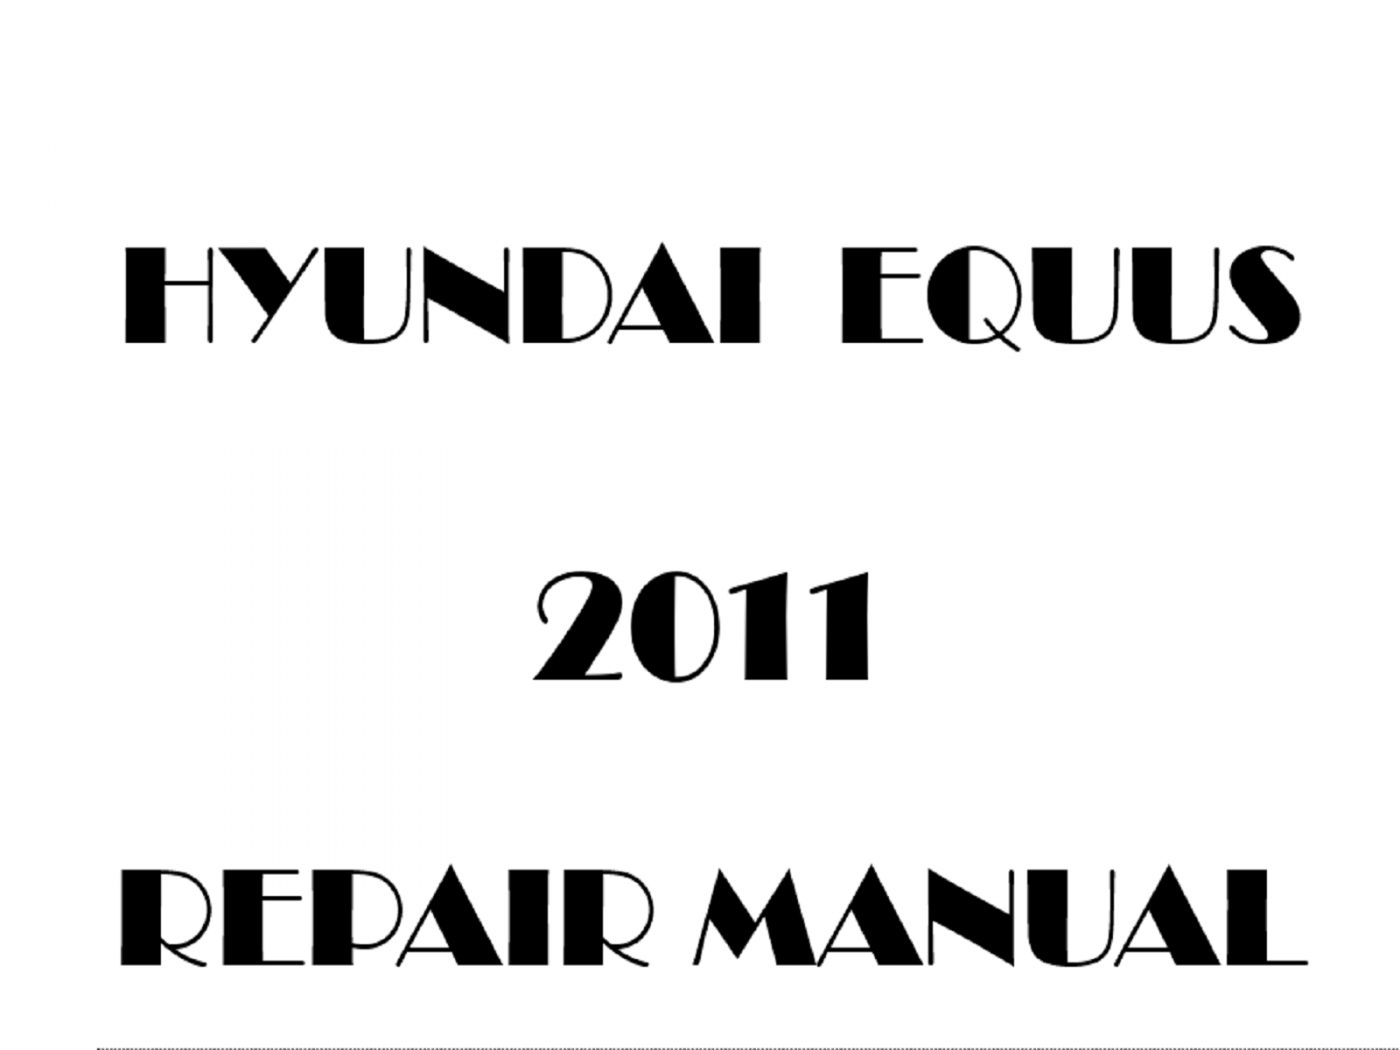 2011 Hyundai Equus repair manual